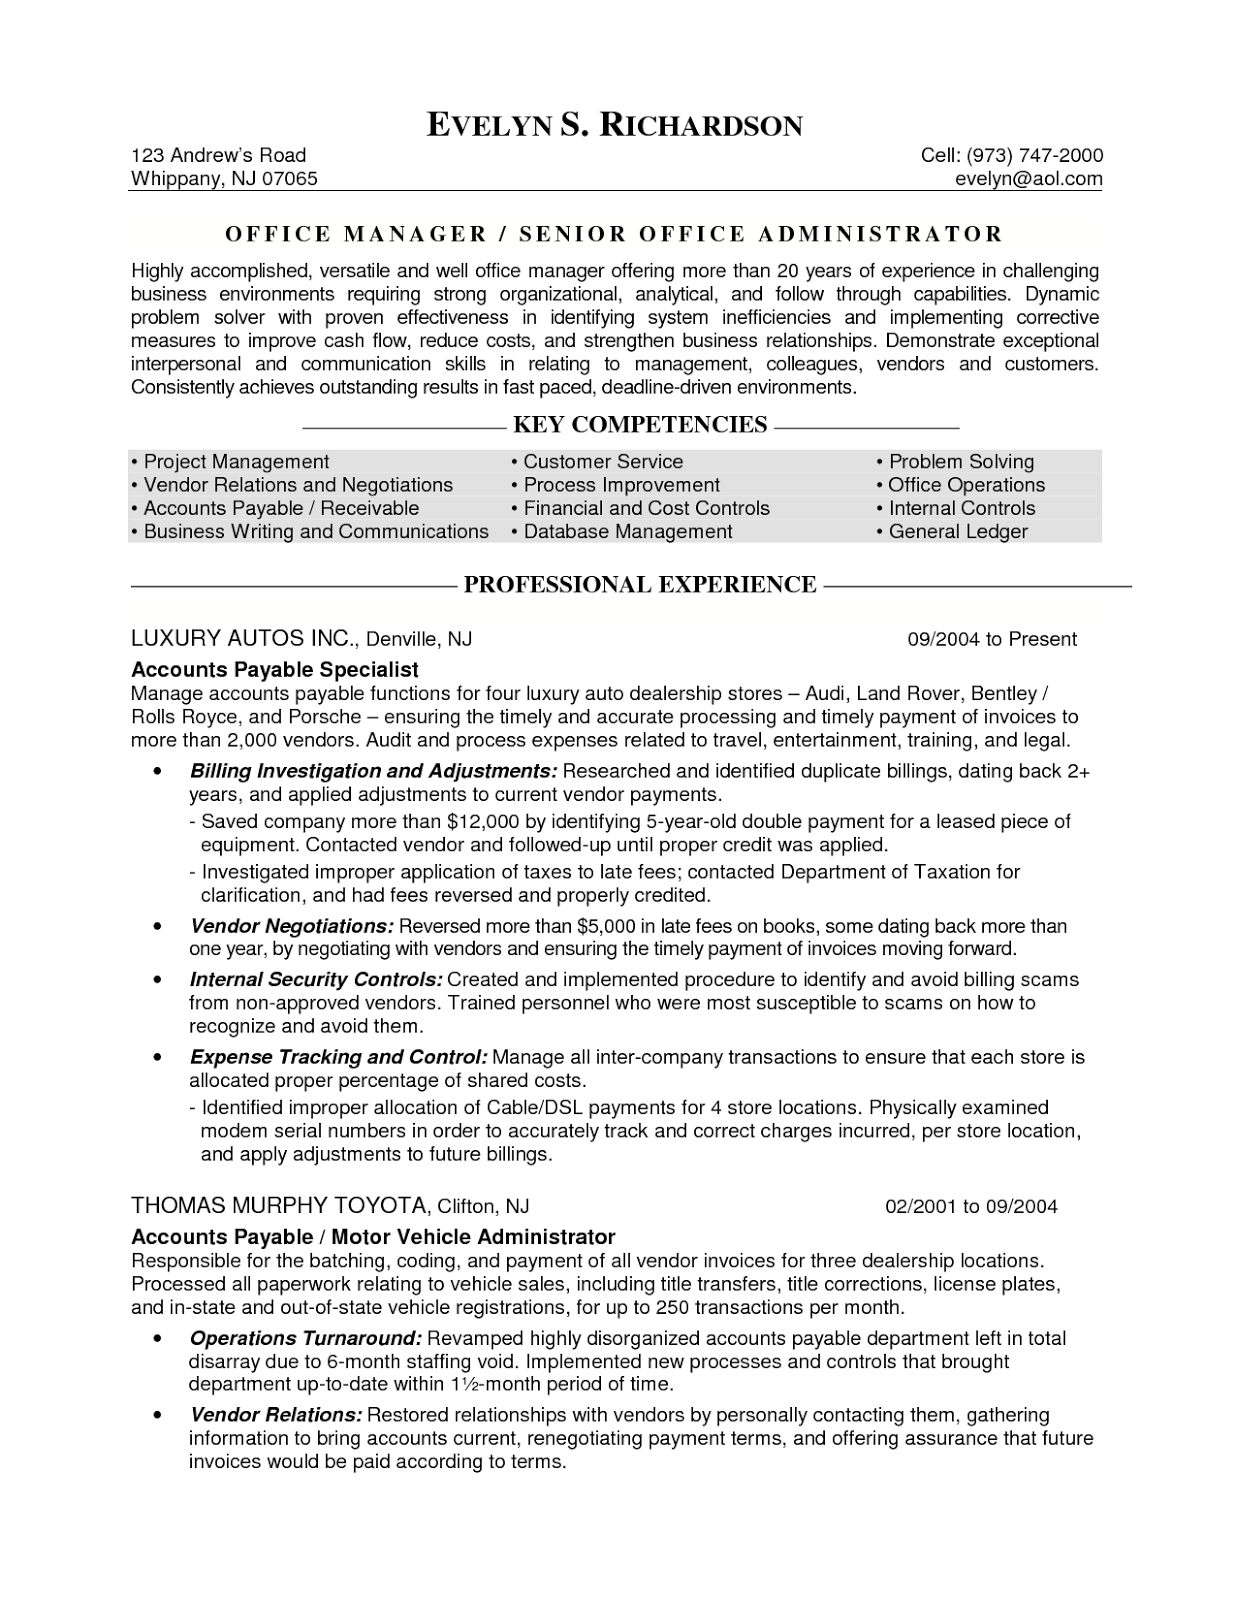 office admin resume samples